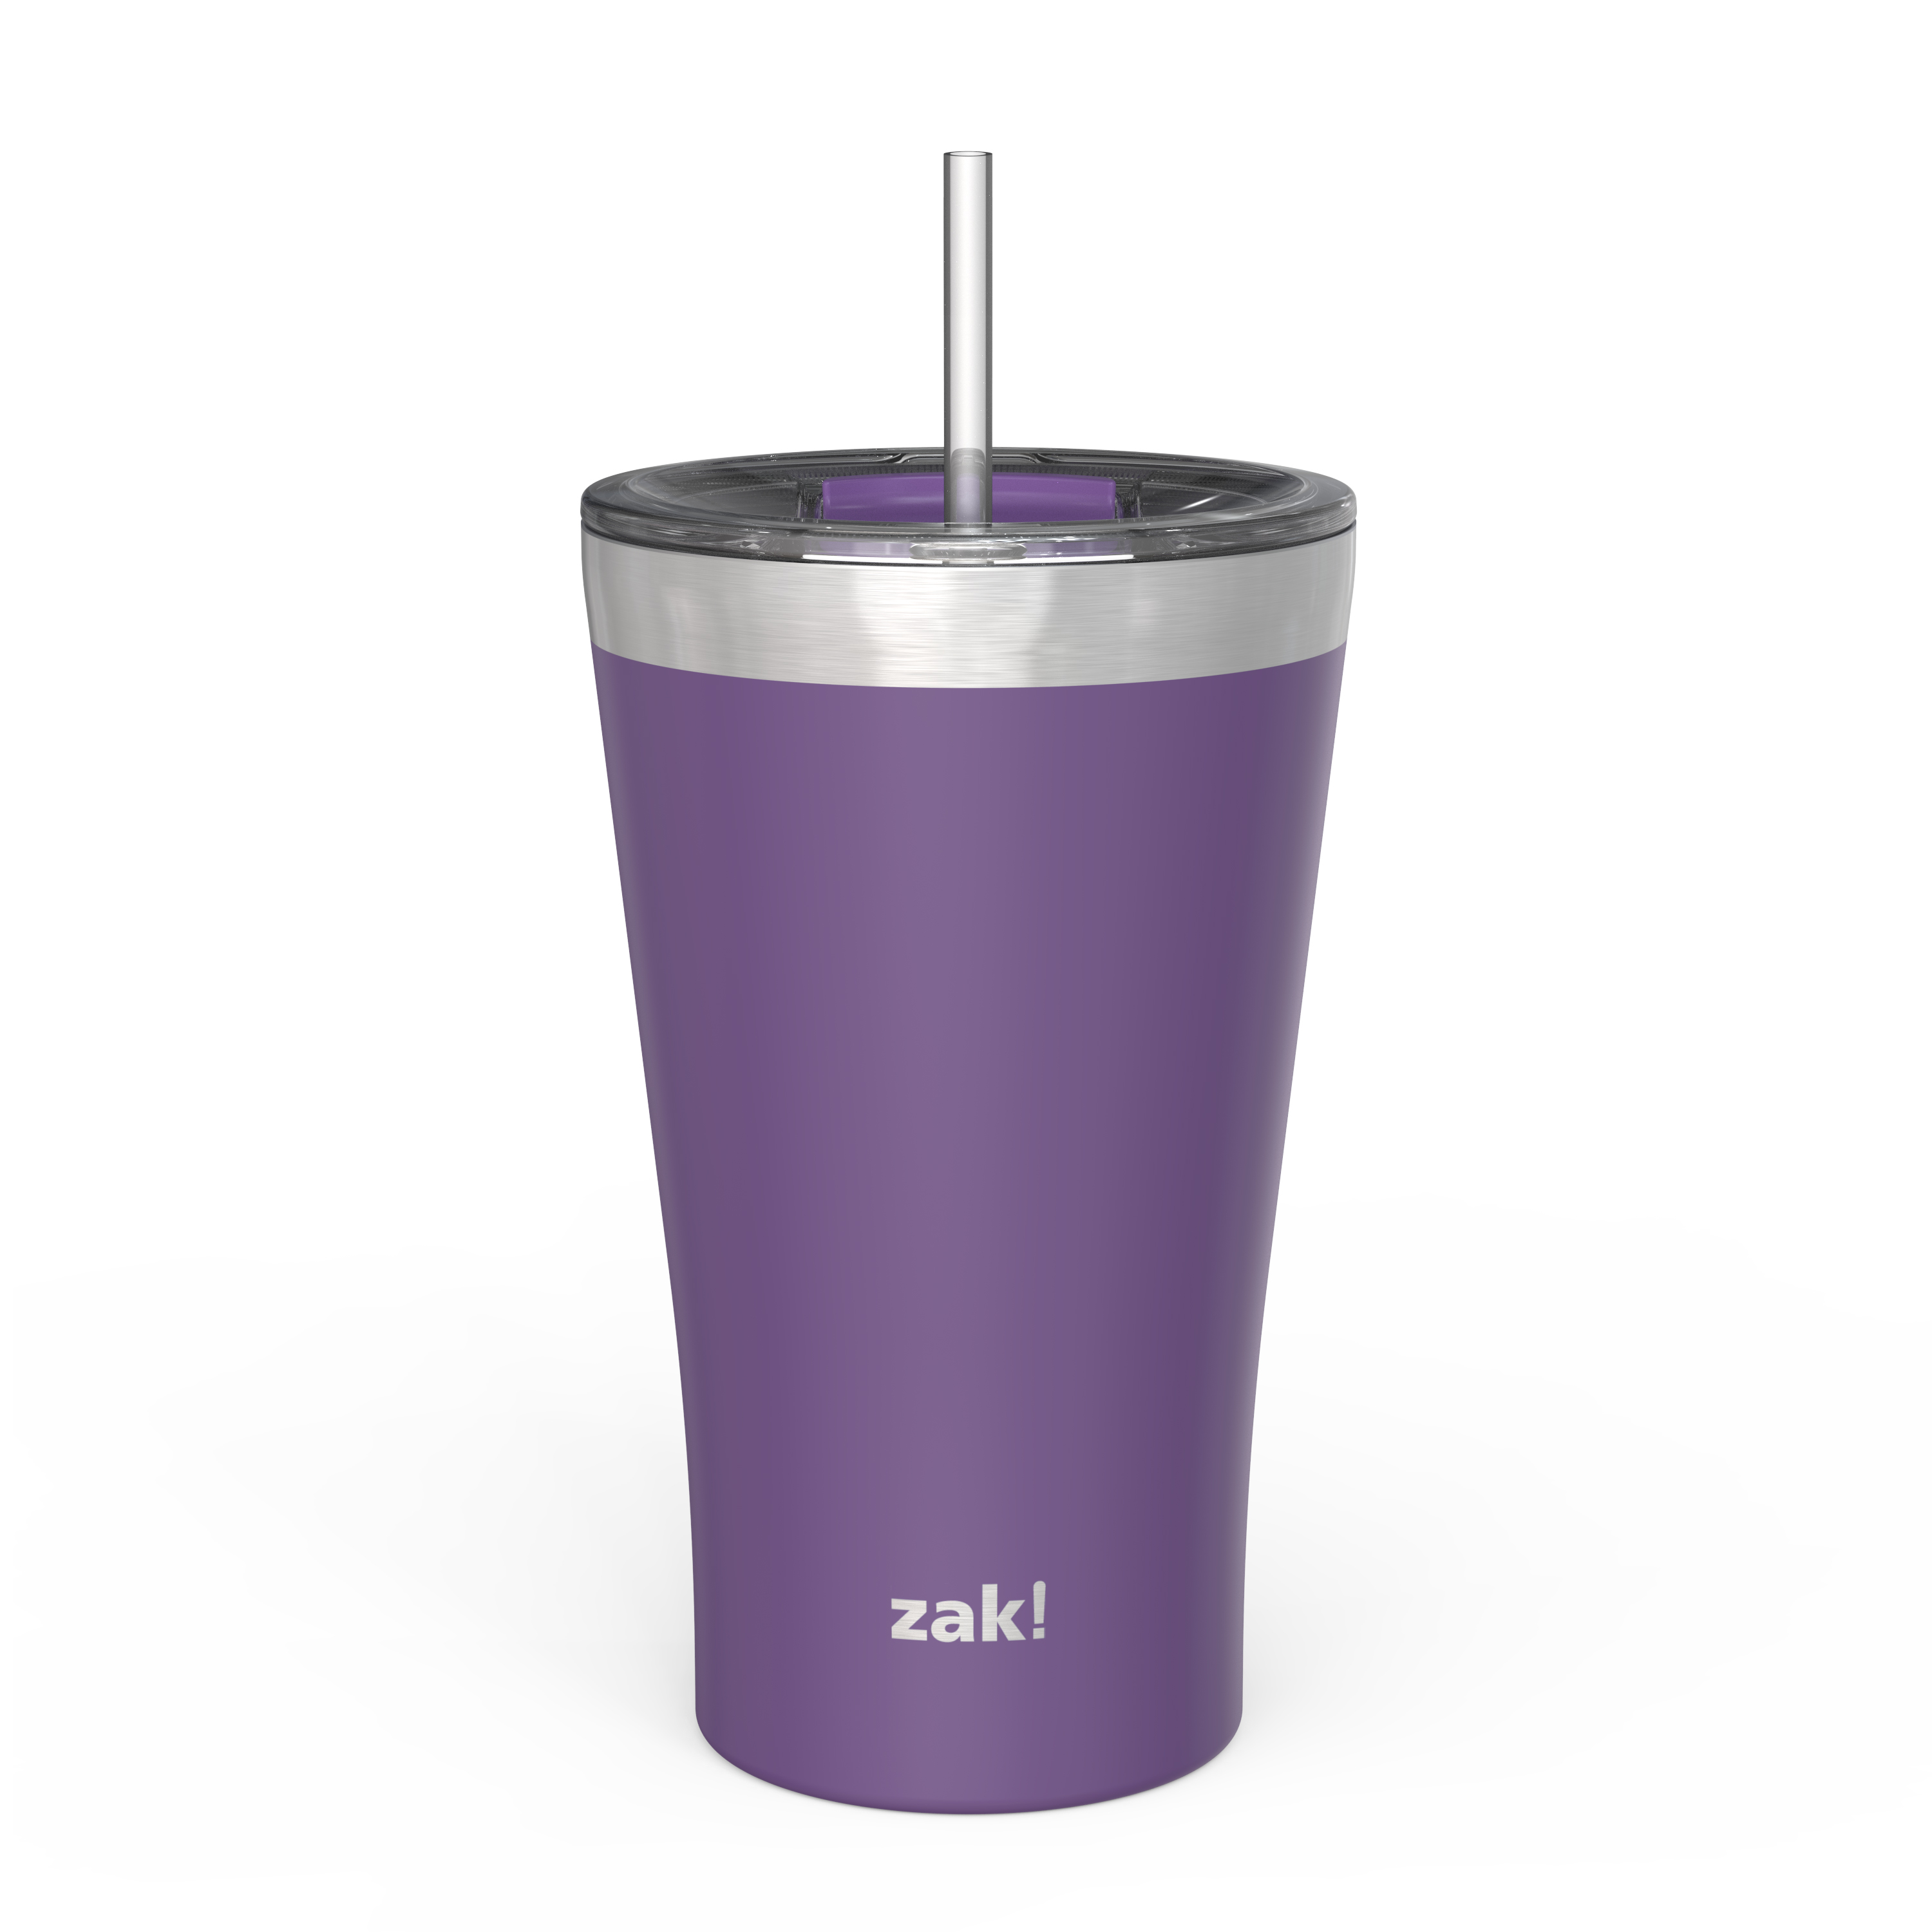 Zak Hydration 20 ounce Reusable Vacuum Insulated Stainless Steel Tumbler with Straw, Viola slideshow image 1